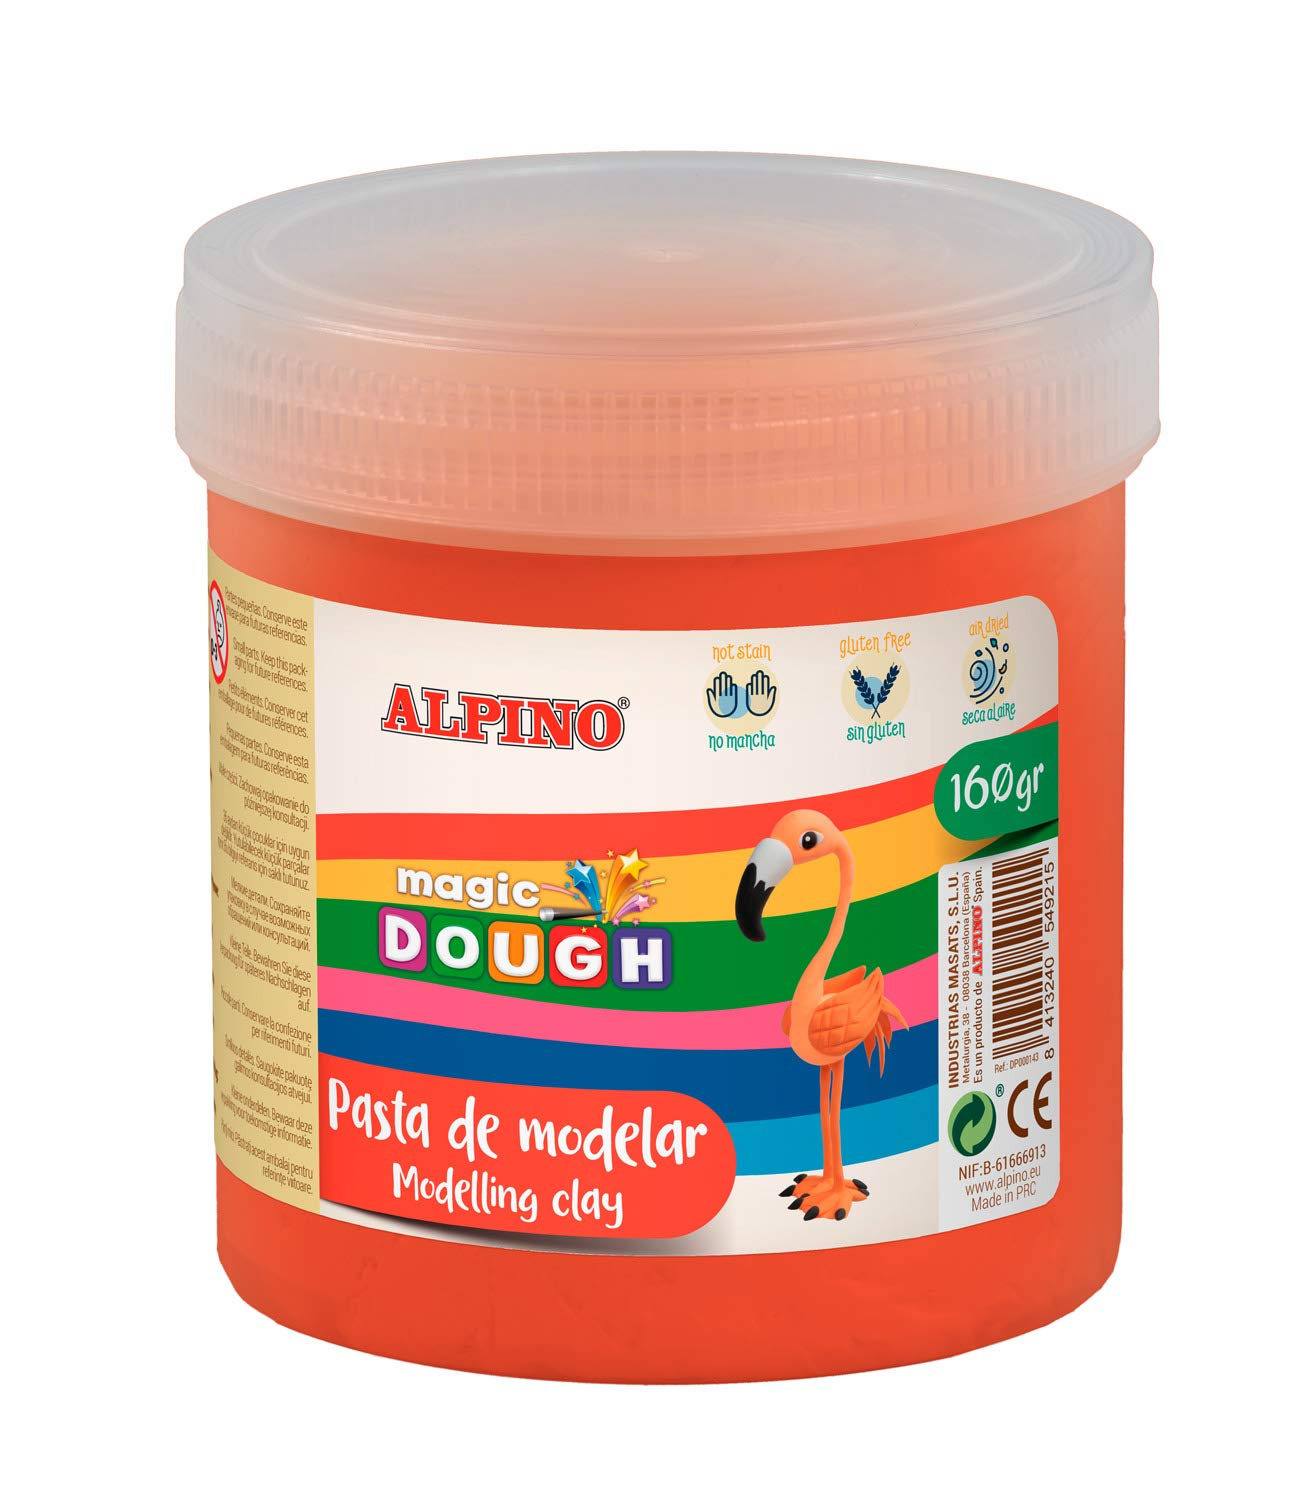 Pasta modelar ALPINO Magic Dough 160g rojo DP000146